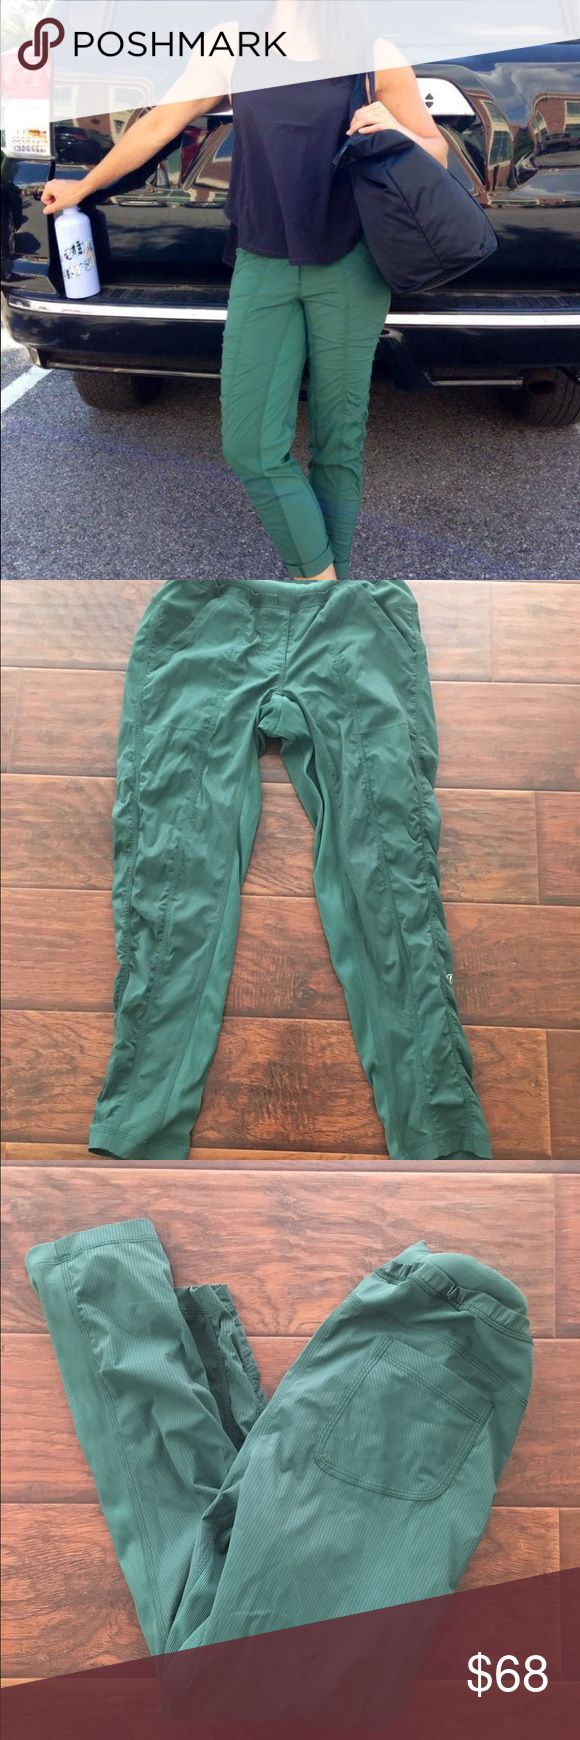 Lululemon green street to studio pants In excellent condition with no rips or stains except the drawstring is missing. I took it out bc it looks funny when it hangs out under shirts. These are made of the swift material. They are super lightweight and breathable. They are great for so many activities. Hard to find and not currently for sale online. Thanks for looking.💕 lululemon athletica Pants Straight Leg